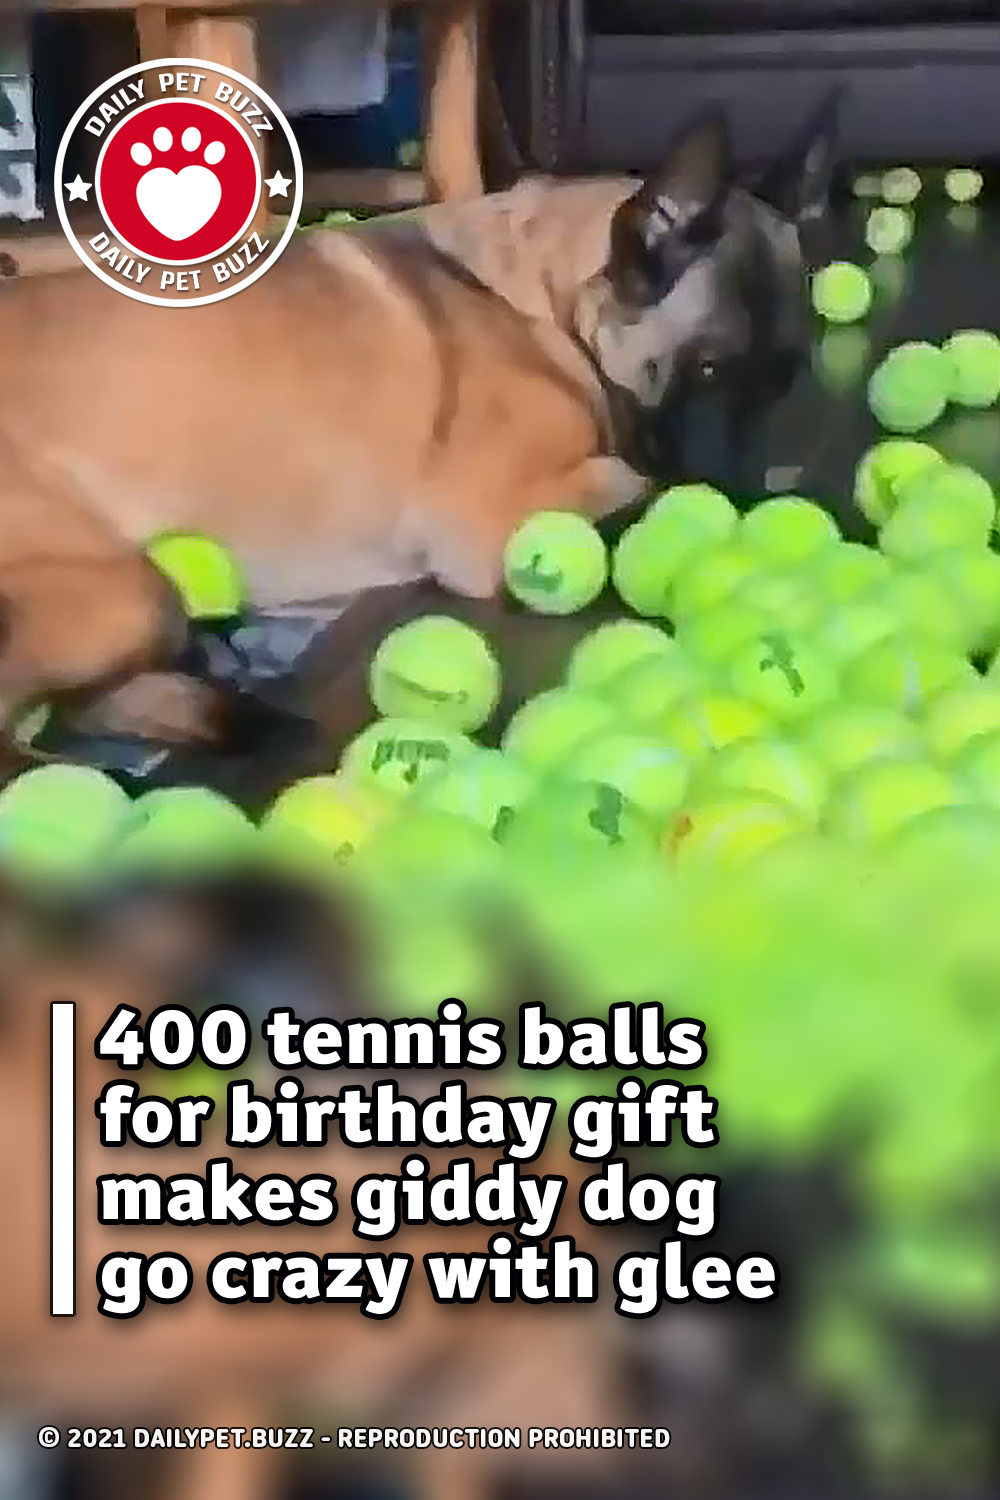 400 tennis balls for birthday gift makes giddy dog go crazy with glee